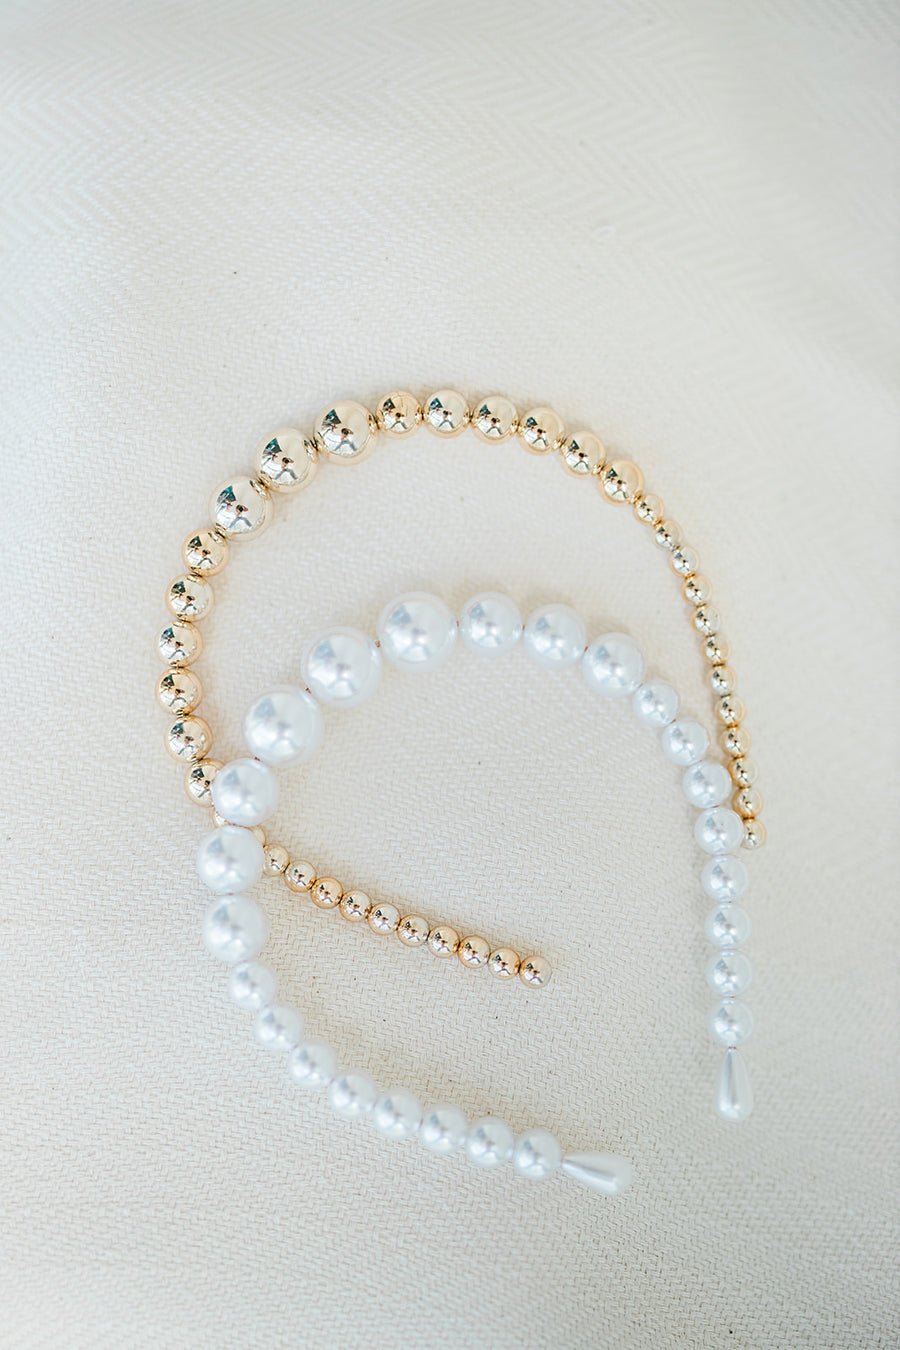 Marseille Pearl or Gold Headband - The Beach Bride by Chic Parisien, a destination for beach weddings, bachelorettes and honeymoons